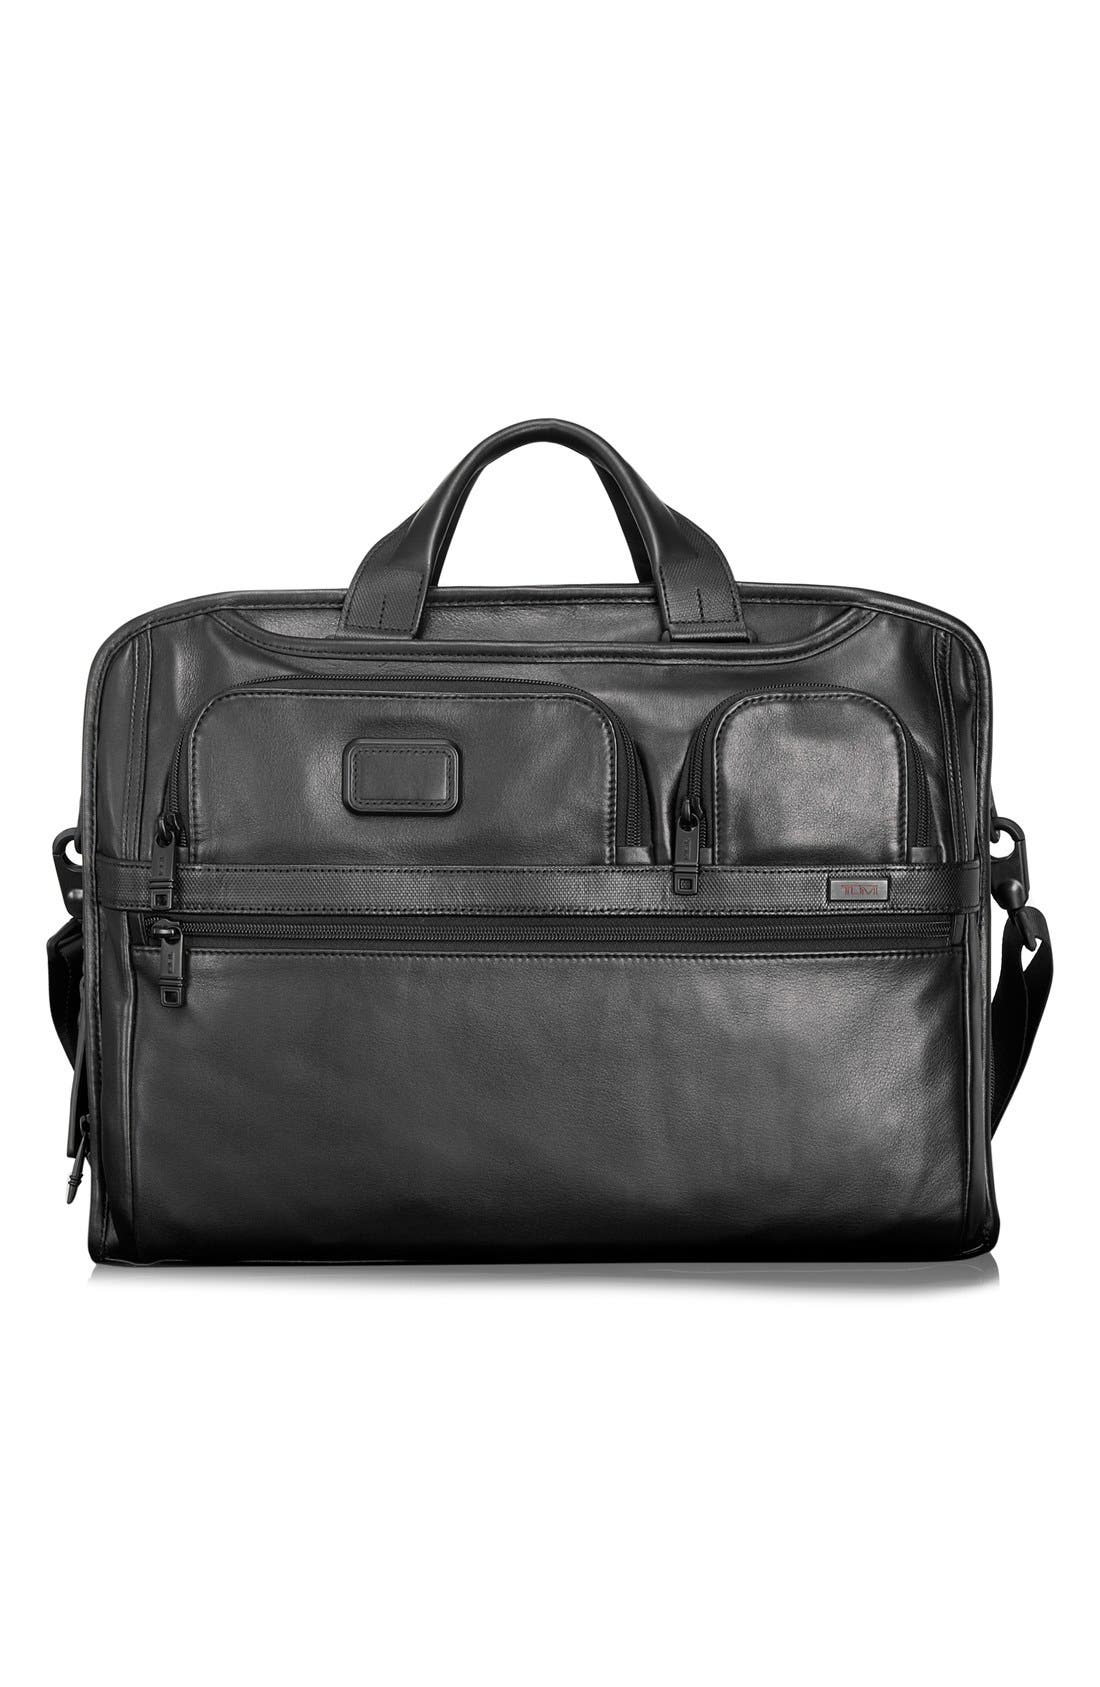 TUMI Alpha 2 Softside Leather Laptop Briefcase